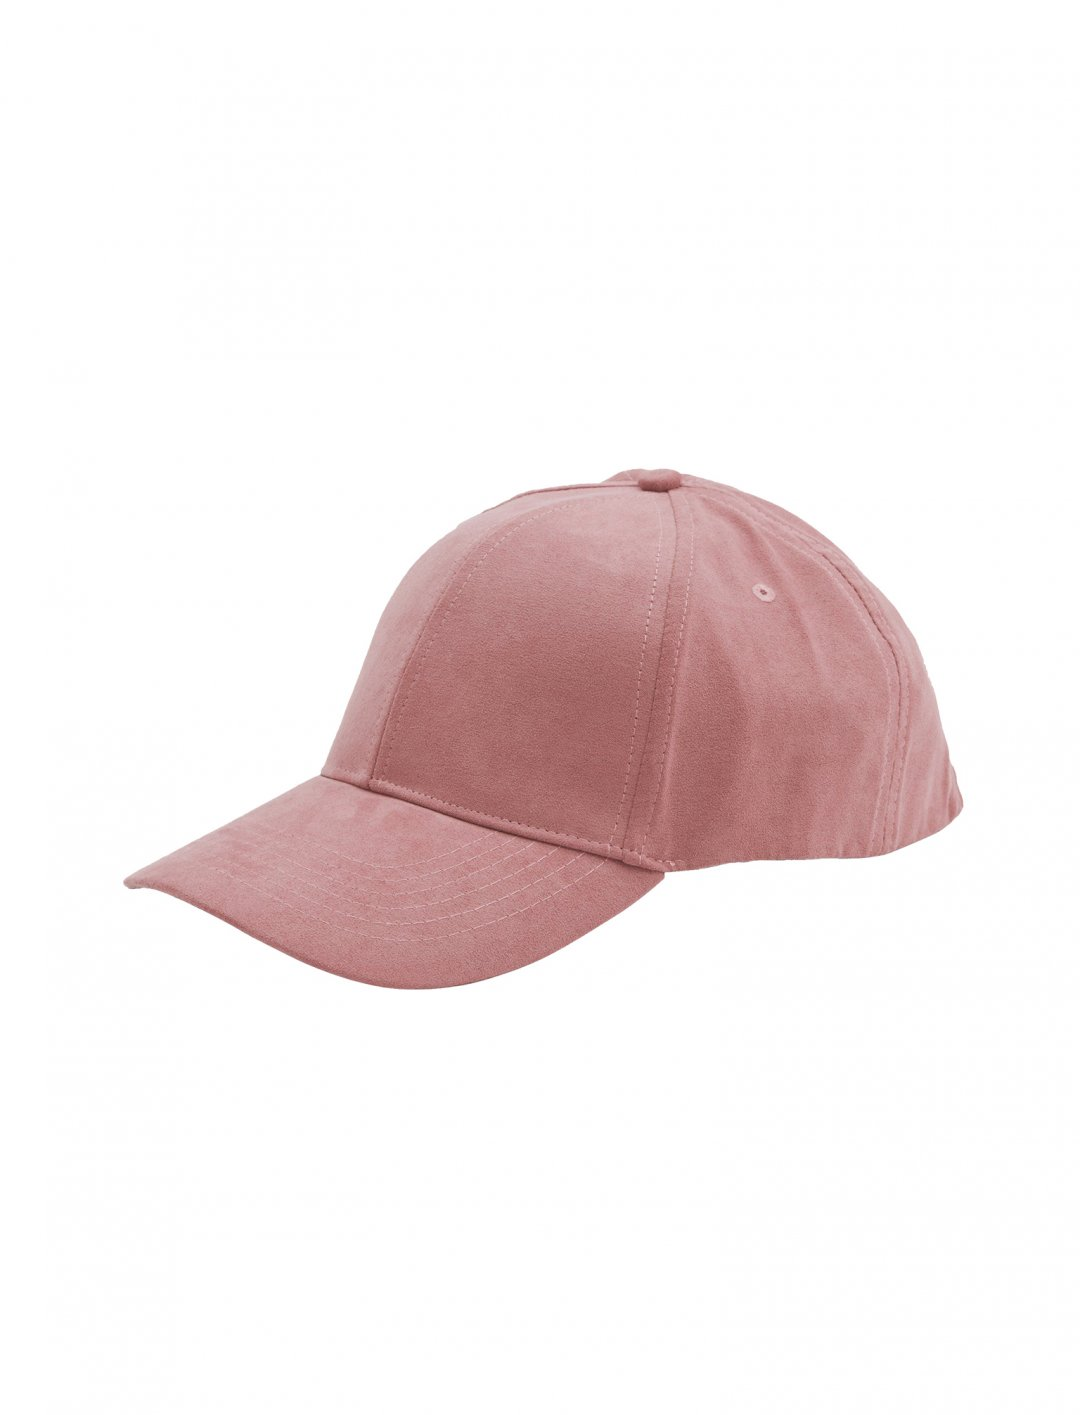 "New Look Pink Suede Cap {""id"":16,""product_section_id"":1,""name"":""Accessories"",""order"":15} New Look"